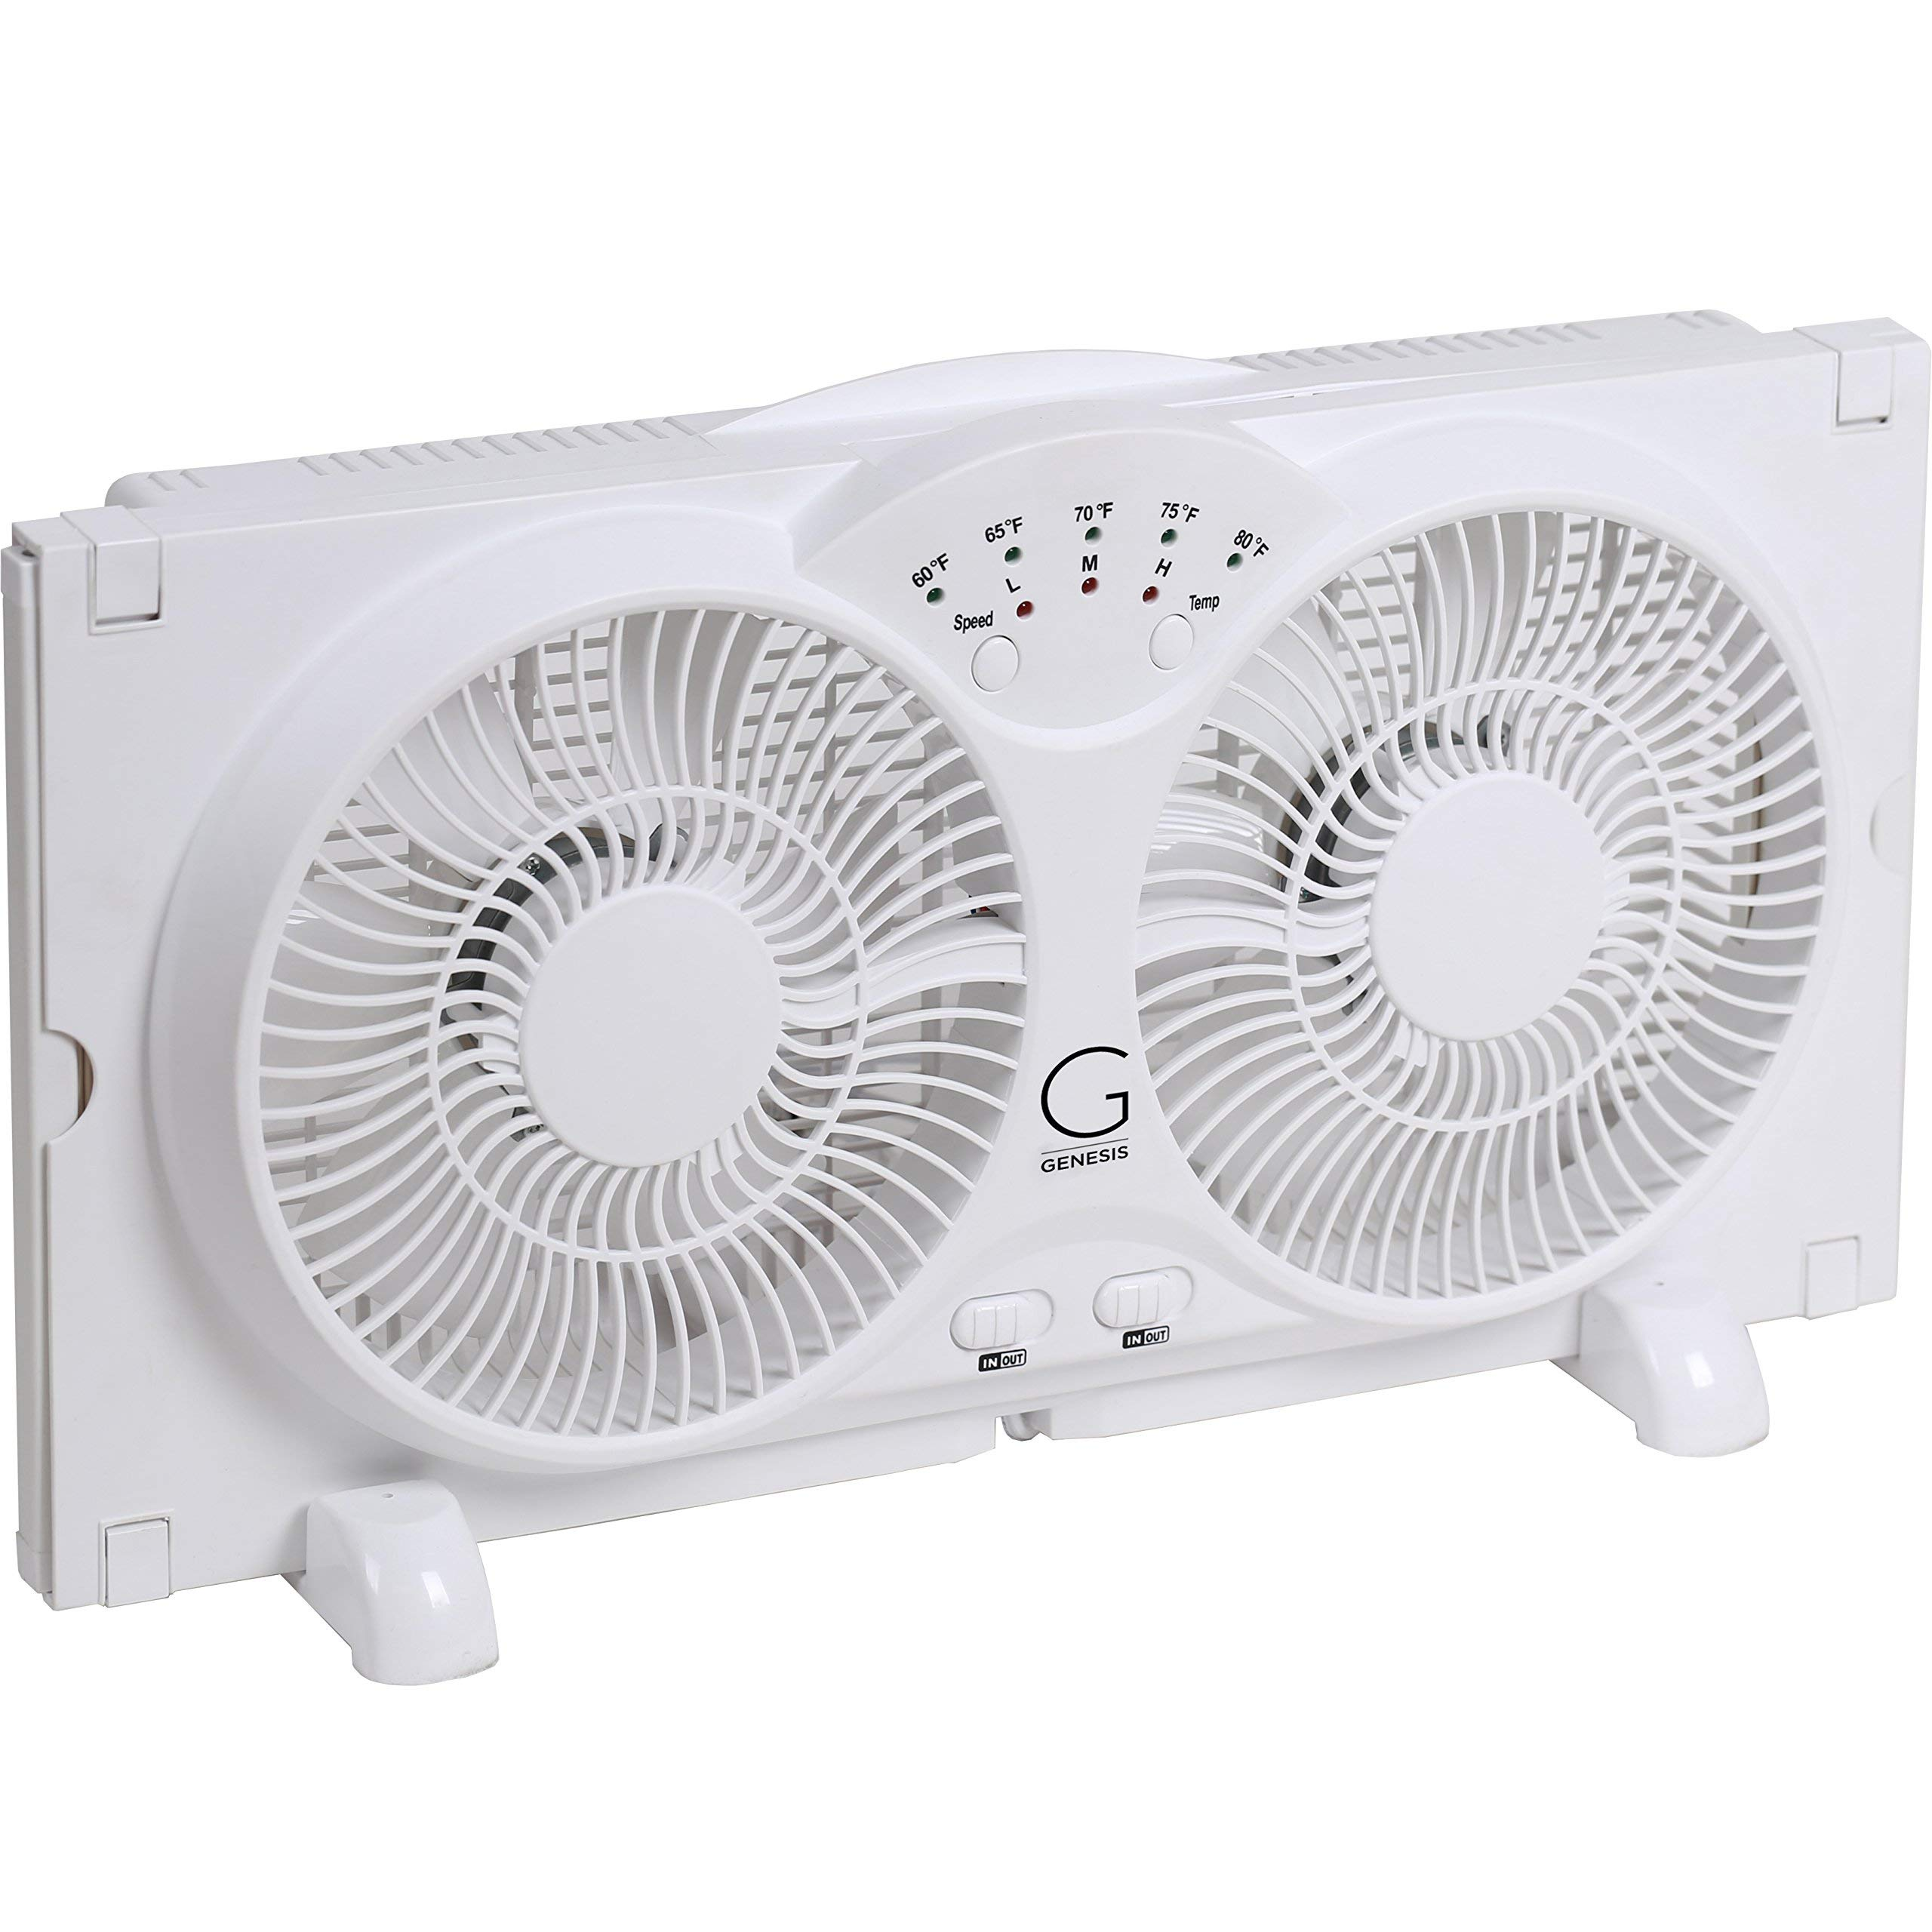 Genesis Twin Window Fan with 9 Inch Blades, High Velocity Reversible AirFlow Fan, LED Indicator Lights Adjustable Thermostat & Max Cool Technology, ETL Certified (Renewed) by Genesis